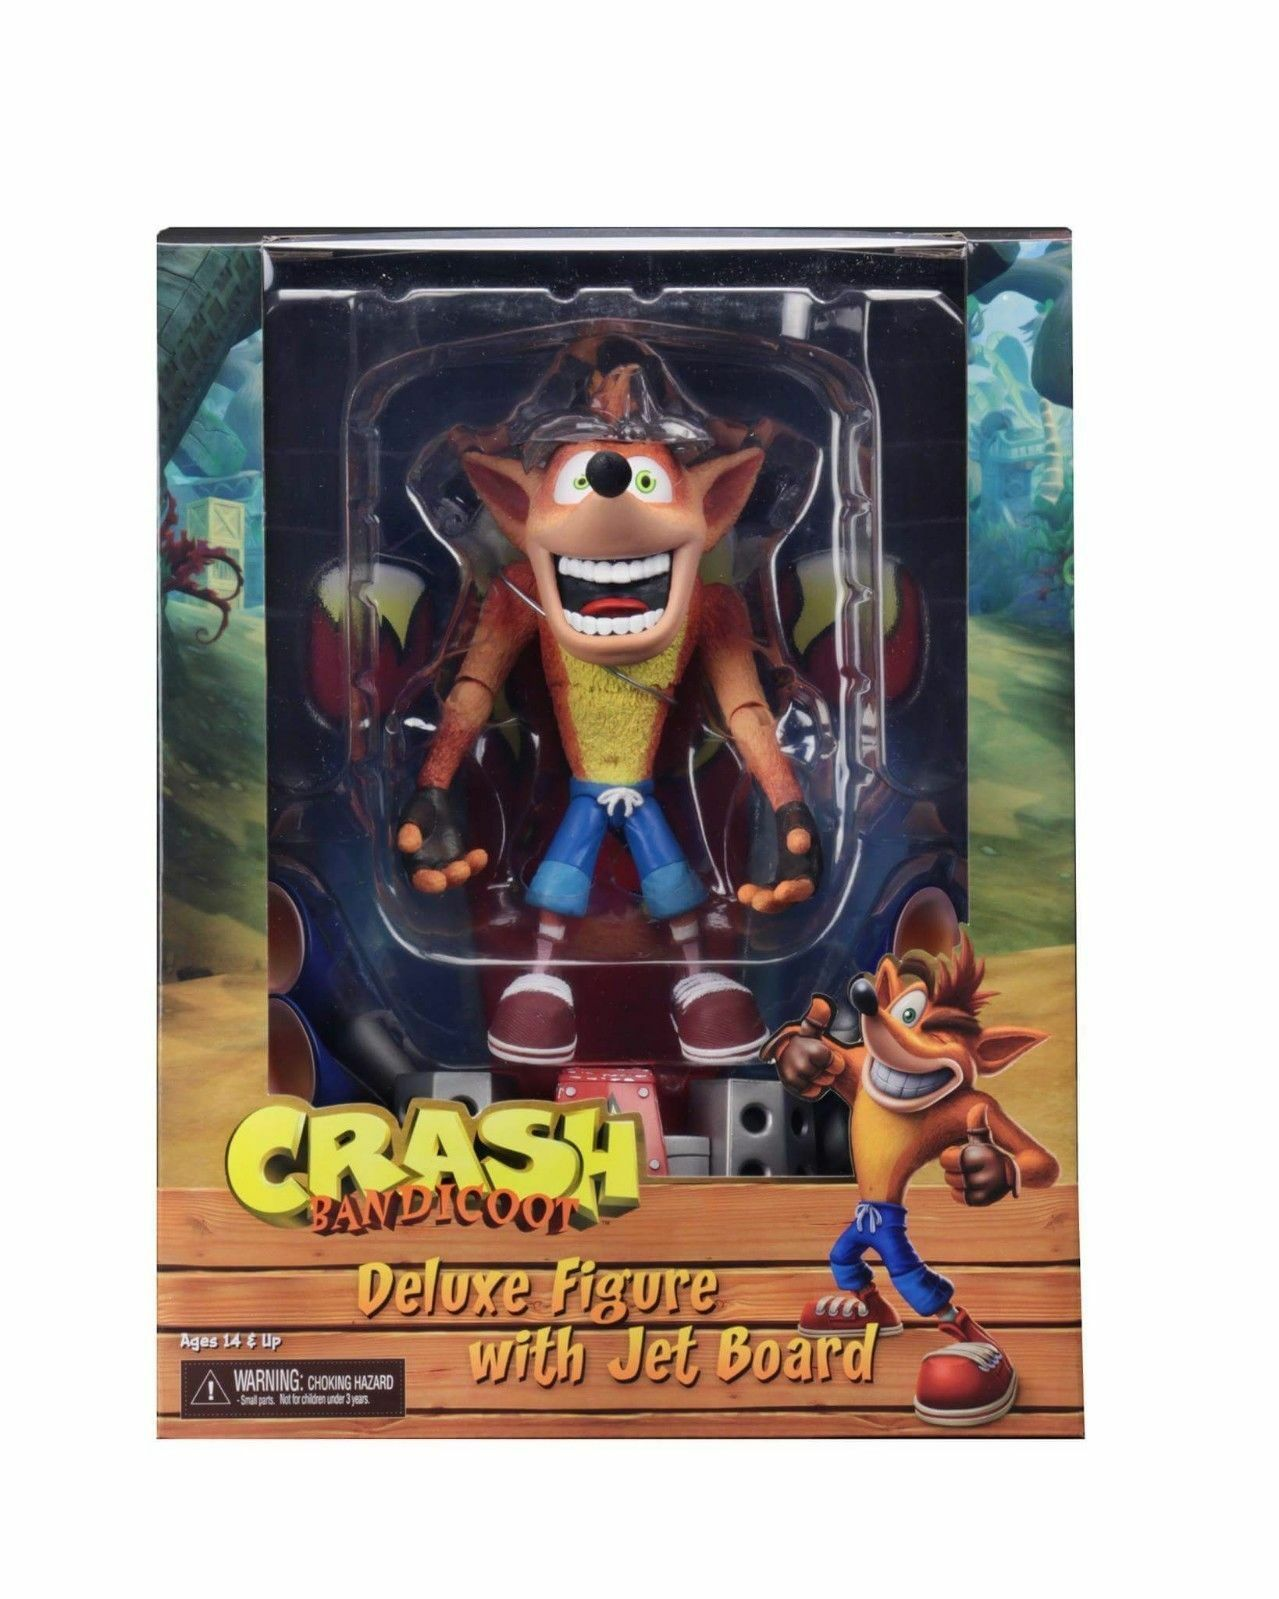 NECA-Crash Bandicoot con skateboard Deluxe Action Figure-Nuovo di Zecca